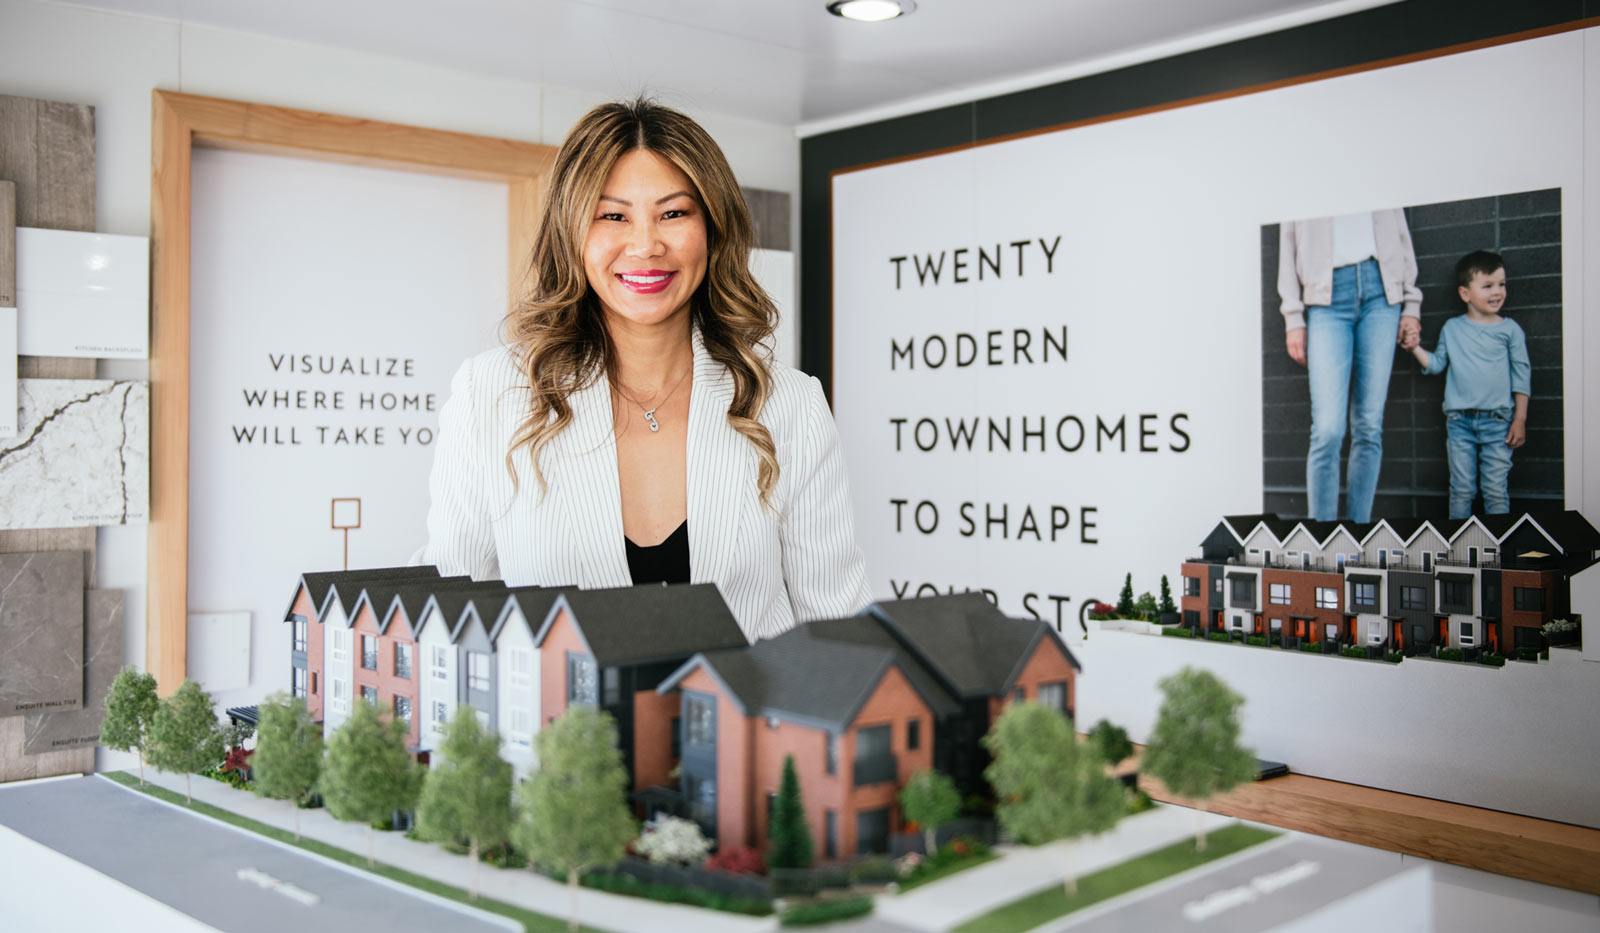 Sydney Townhomes Virual Tour - Contact our sales team for your virtual tour